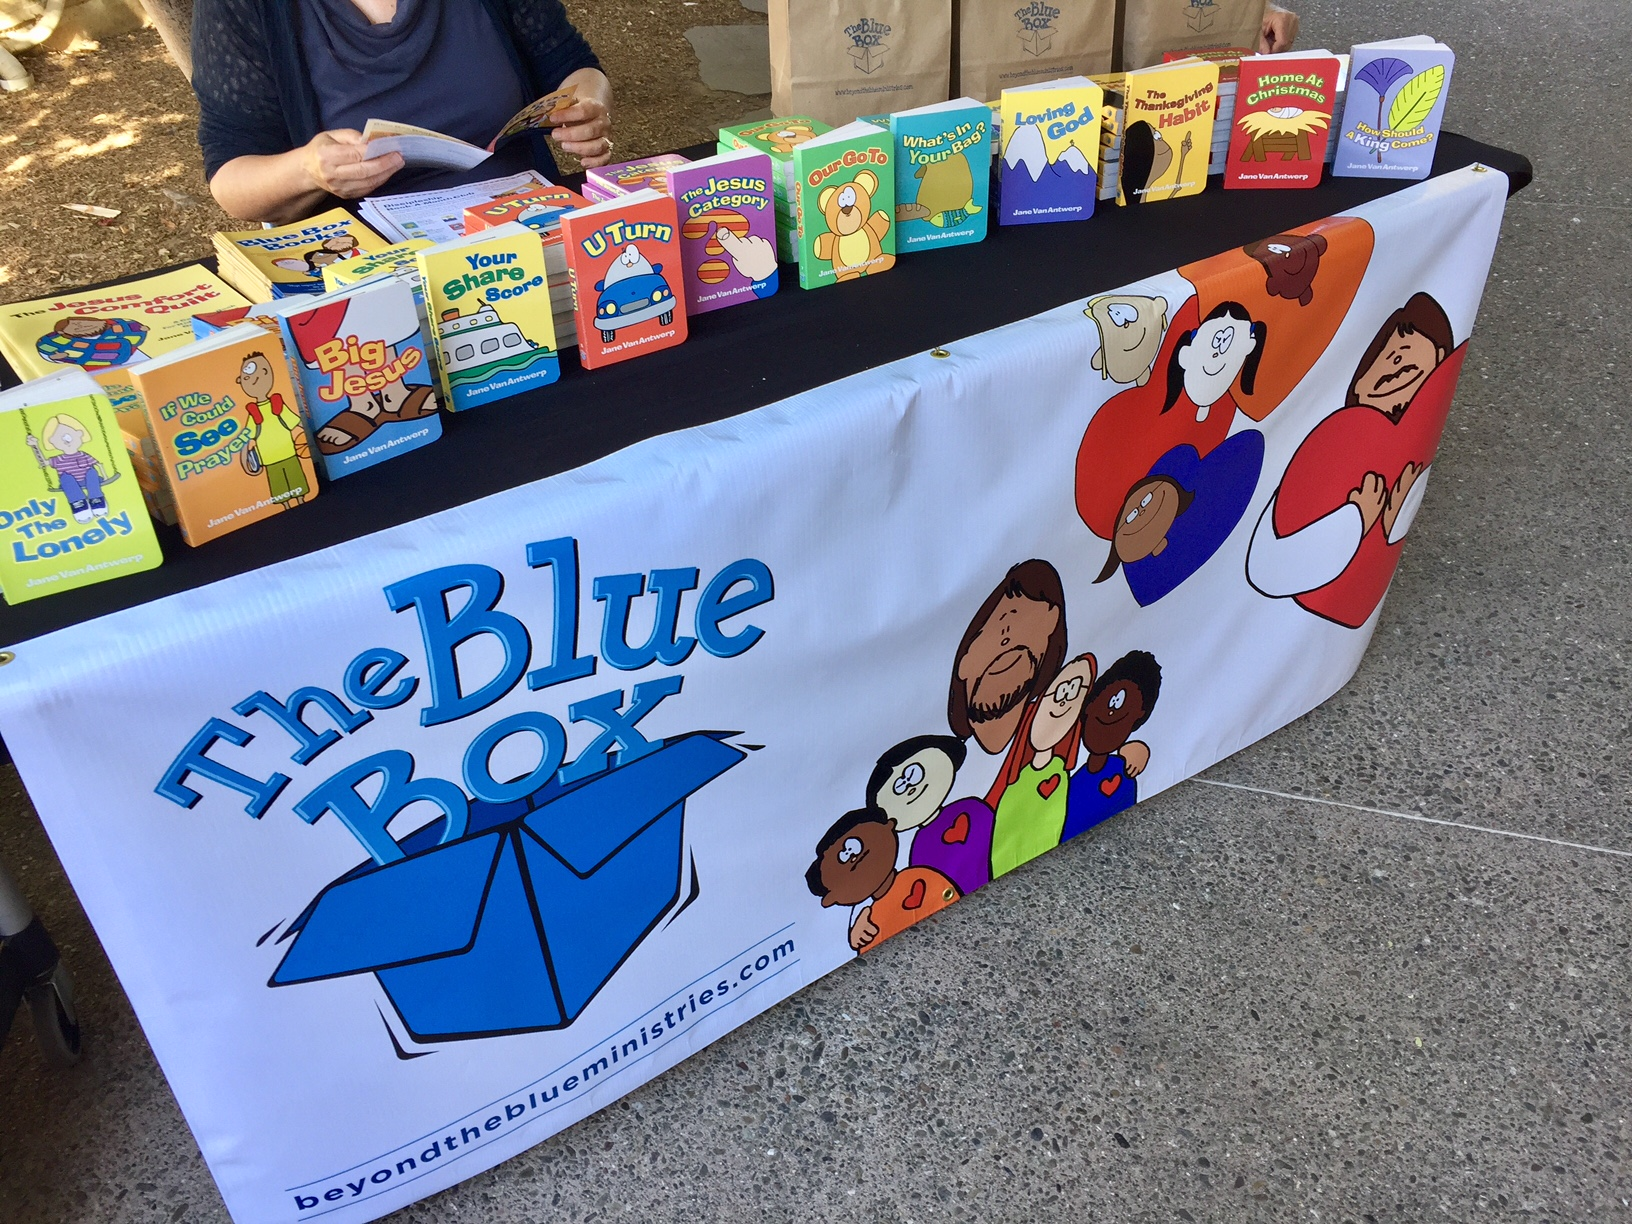 WANT A BLUE BOX TABLE AT YOUR CHURCH?  We love visiting churches in our area (Seattle & PNW), meeting kids and families, and sharing Blue Box Books and resources.  Contact us  for information.